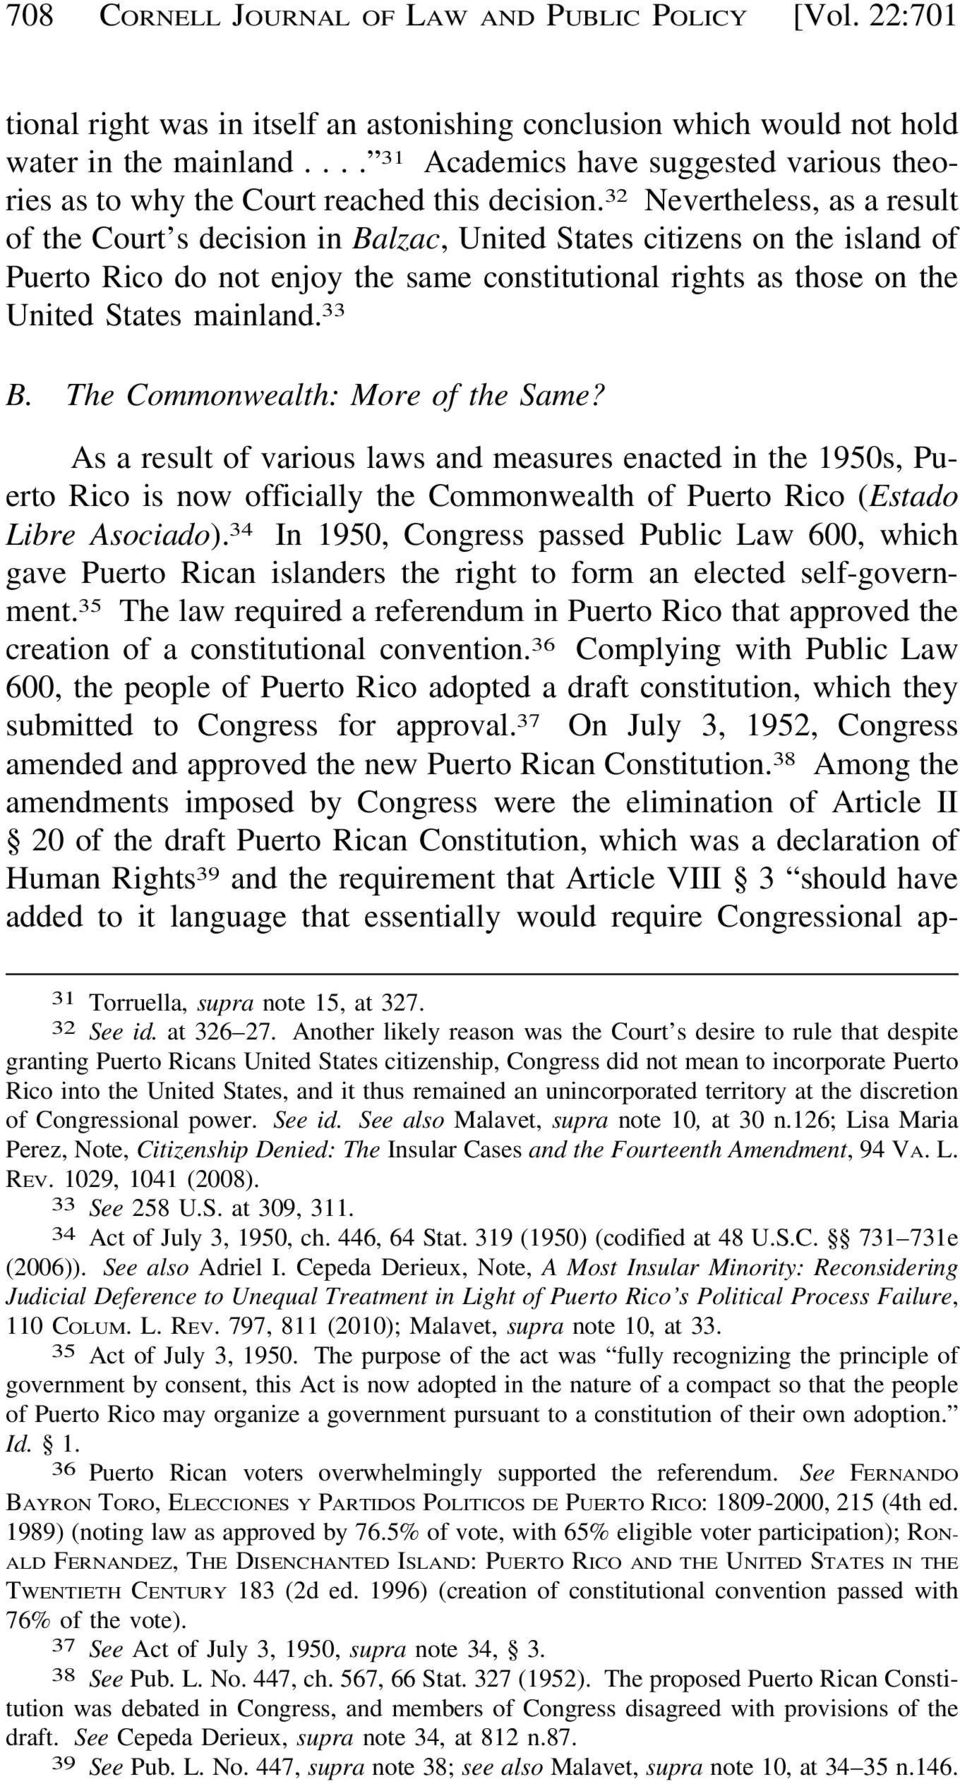 32 Nevertheless, as a result of the Court s decision in Balzac, United States citizens on the island of Puerto Rico do not enjoy the same constitutional rights as those on the United States mainland.